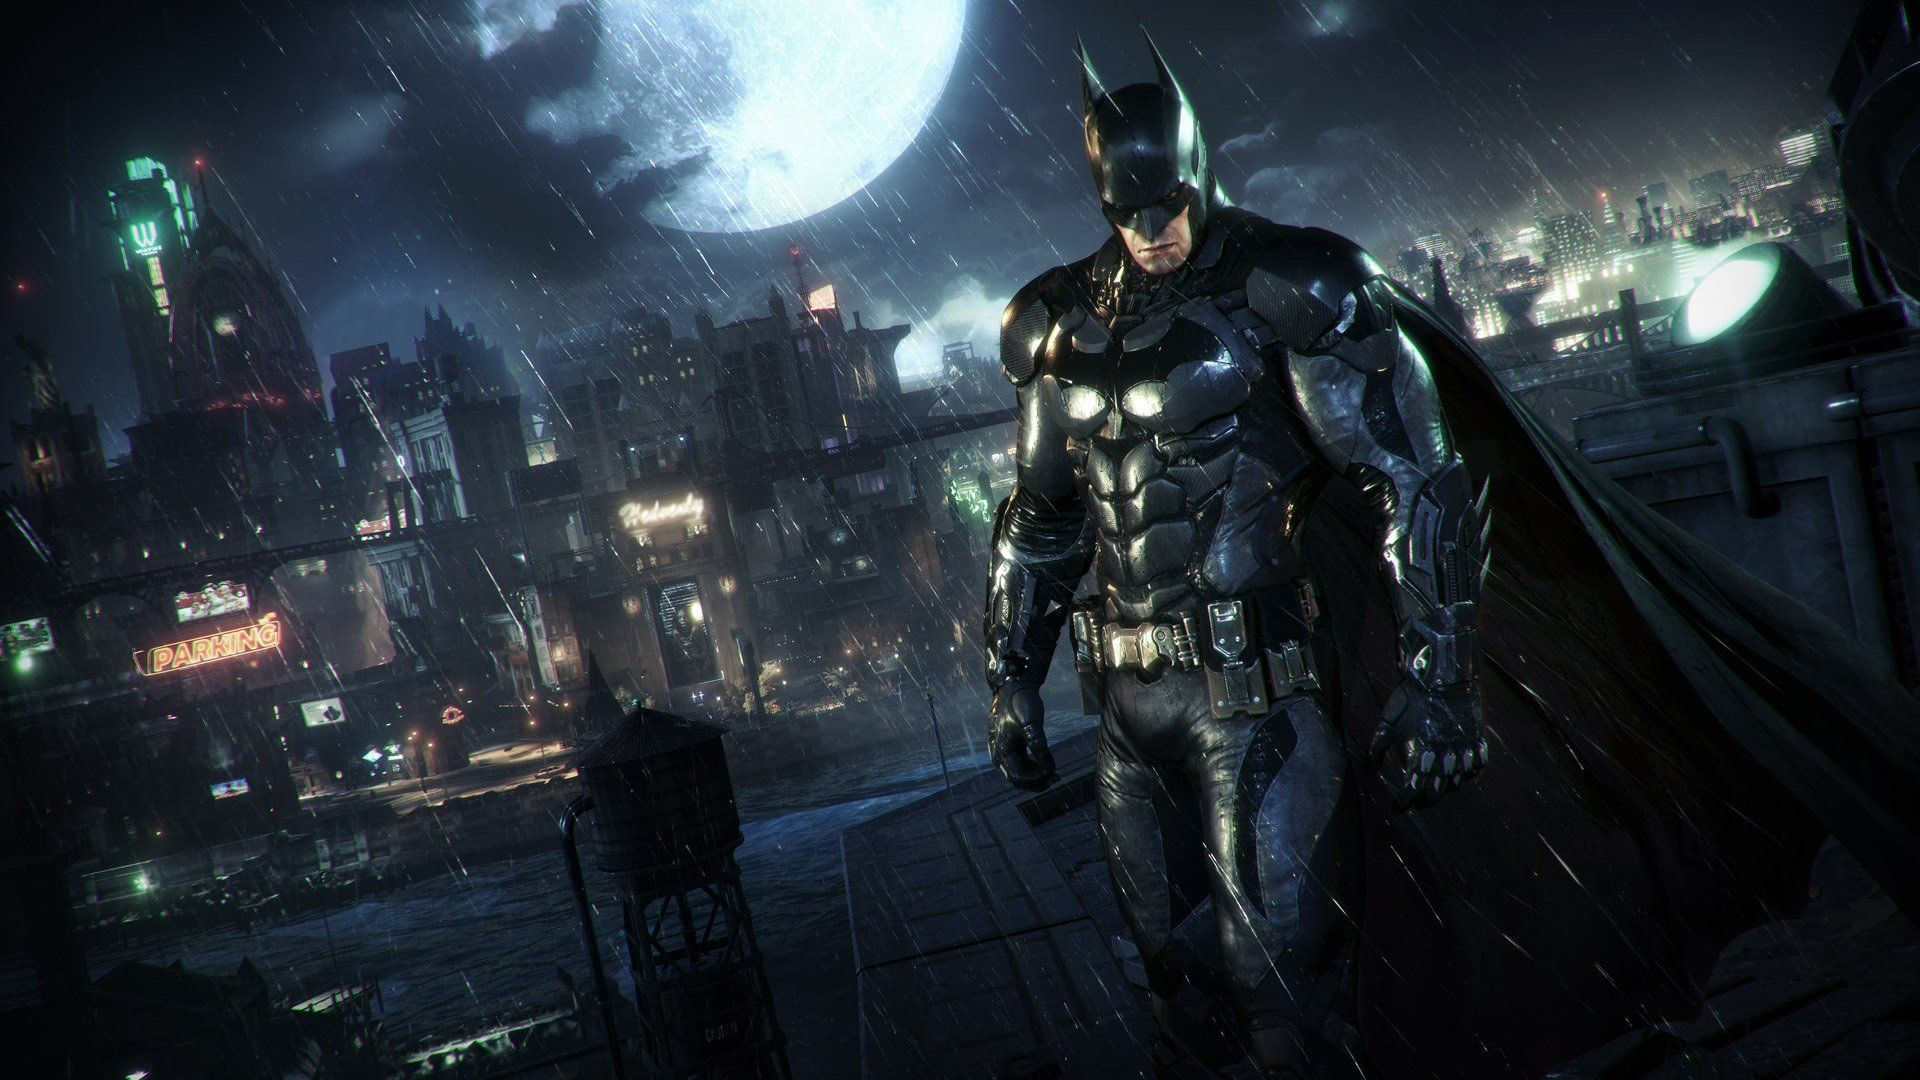 Best Action Games Wallpapers Android Apps On Google Play Laptop Wallpaper3d WallpaperBatman